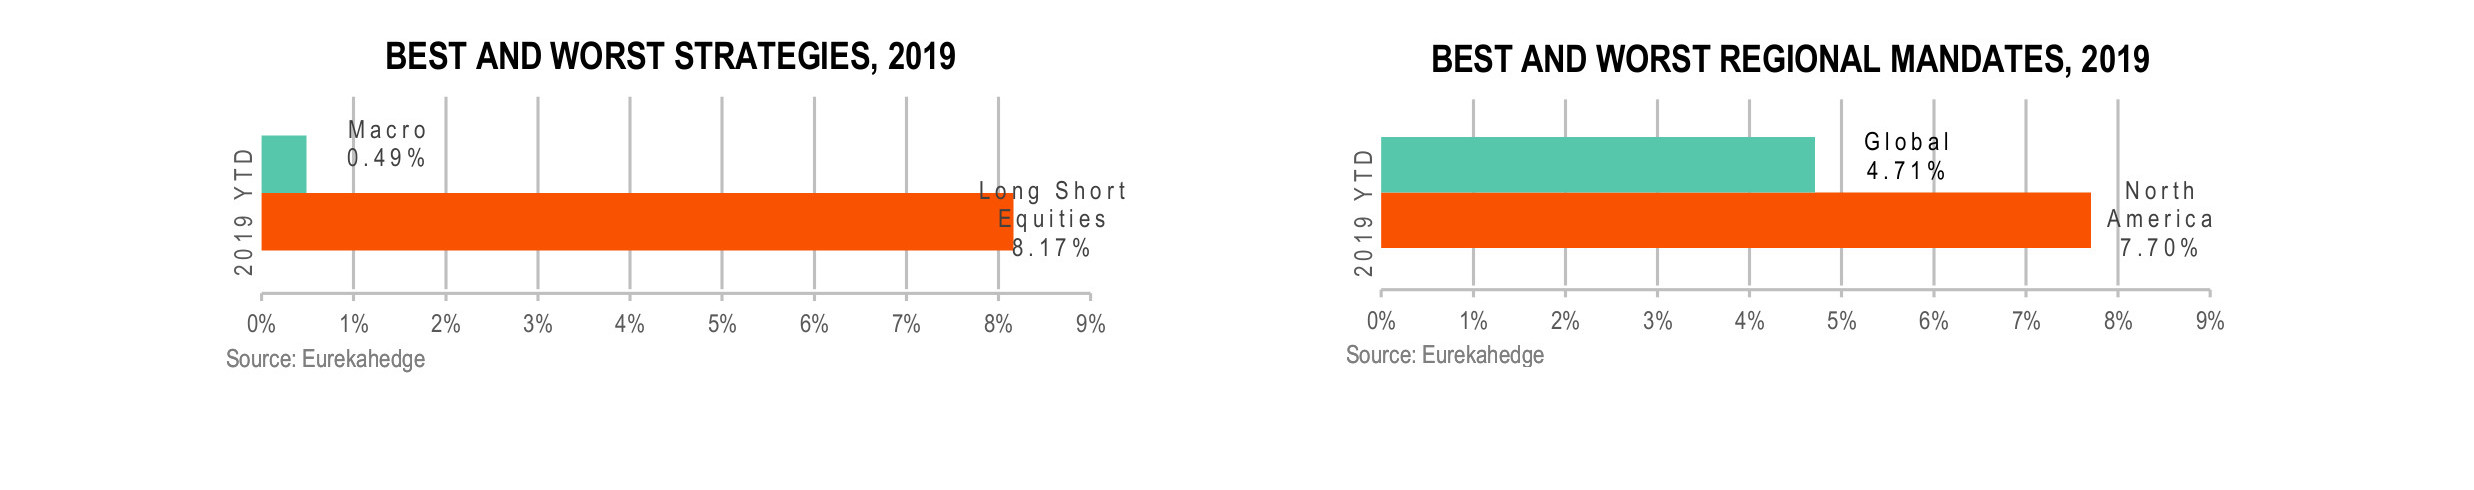 Funds of Hedge Funds Infographic June 2019 - best and worst strategy and regional mandate 2019